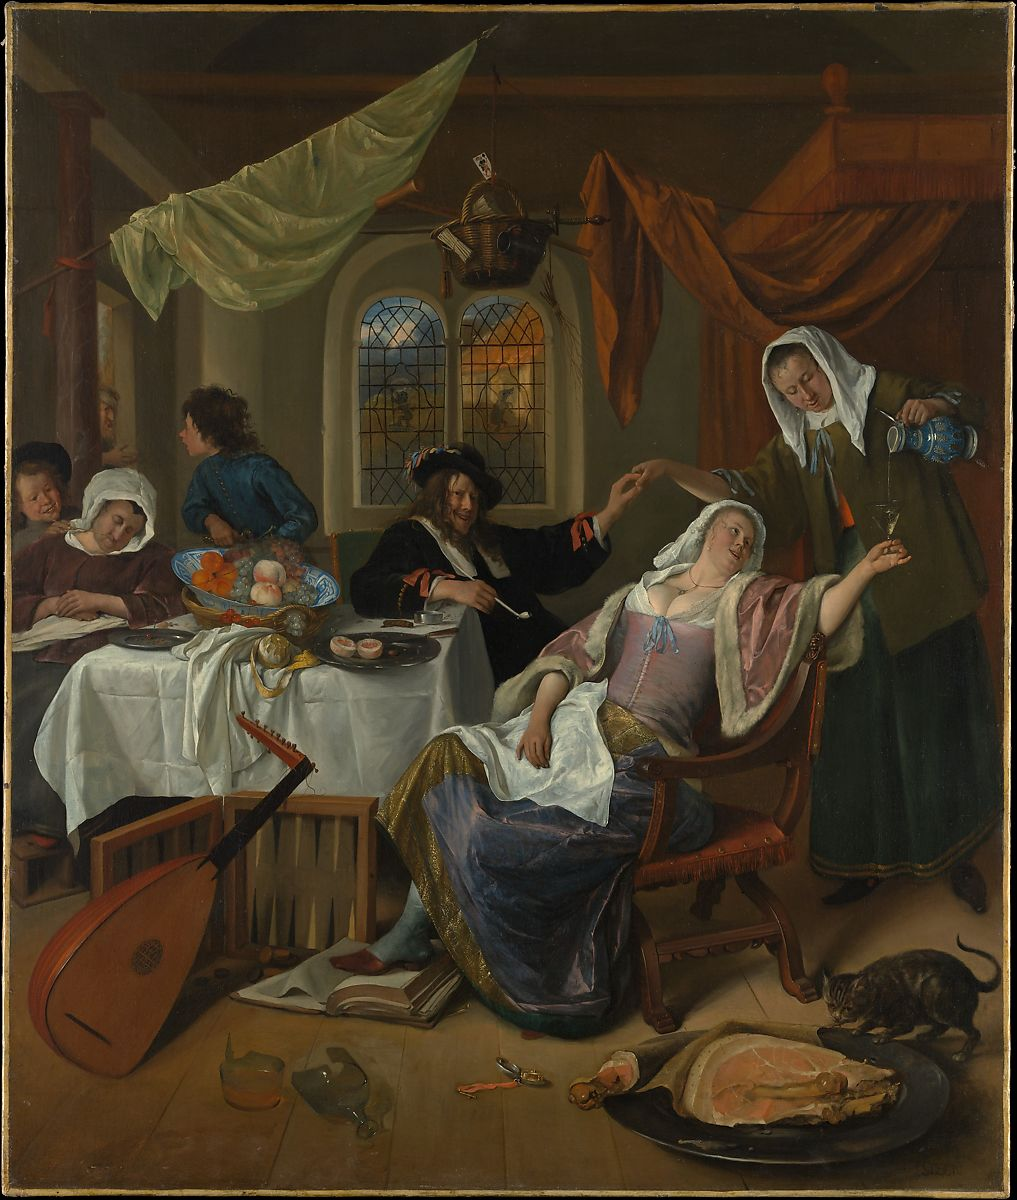 A painting of a dissolute 1600s Dutch household. Drinking, smoking, raucous evil-eyed laughter.